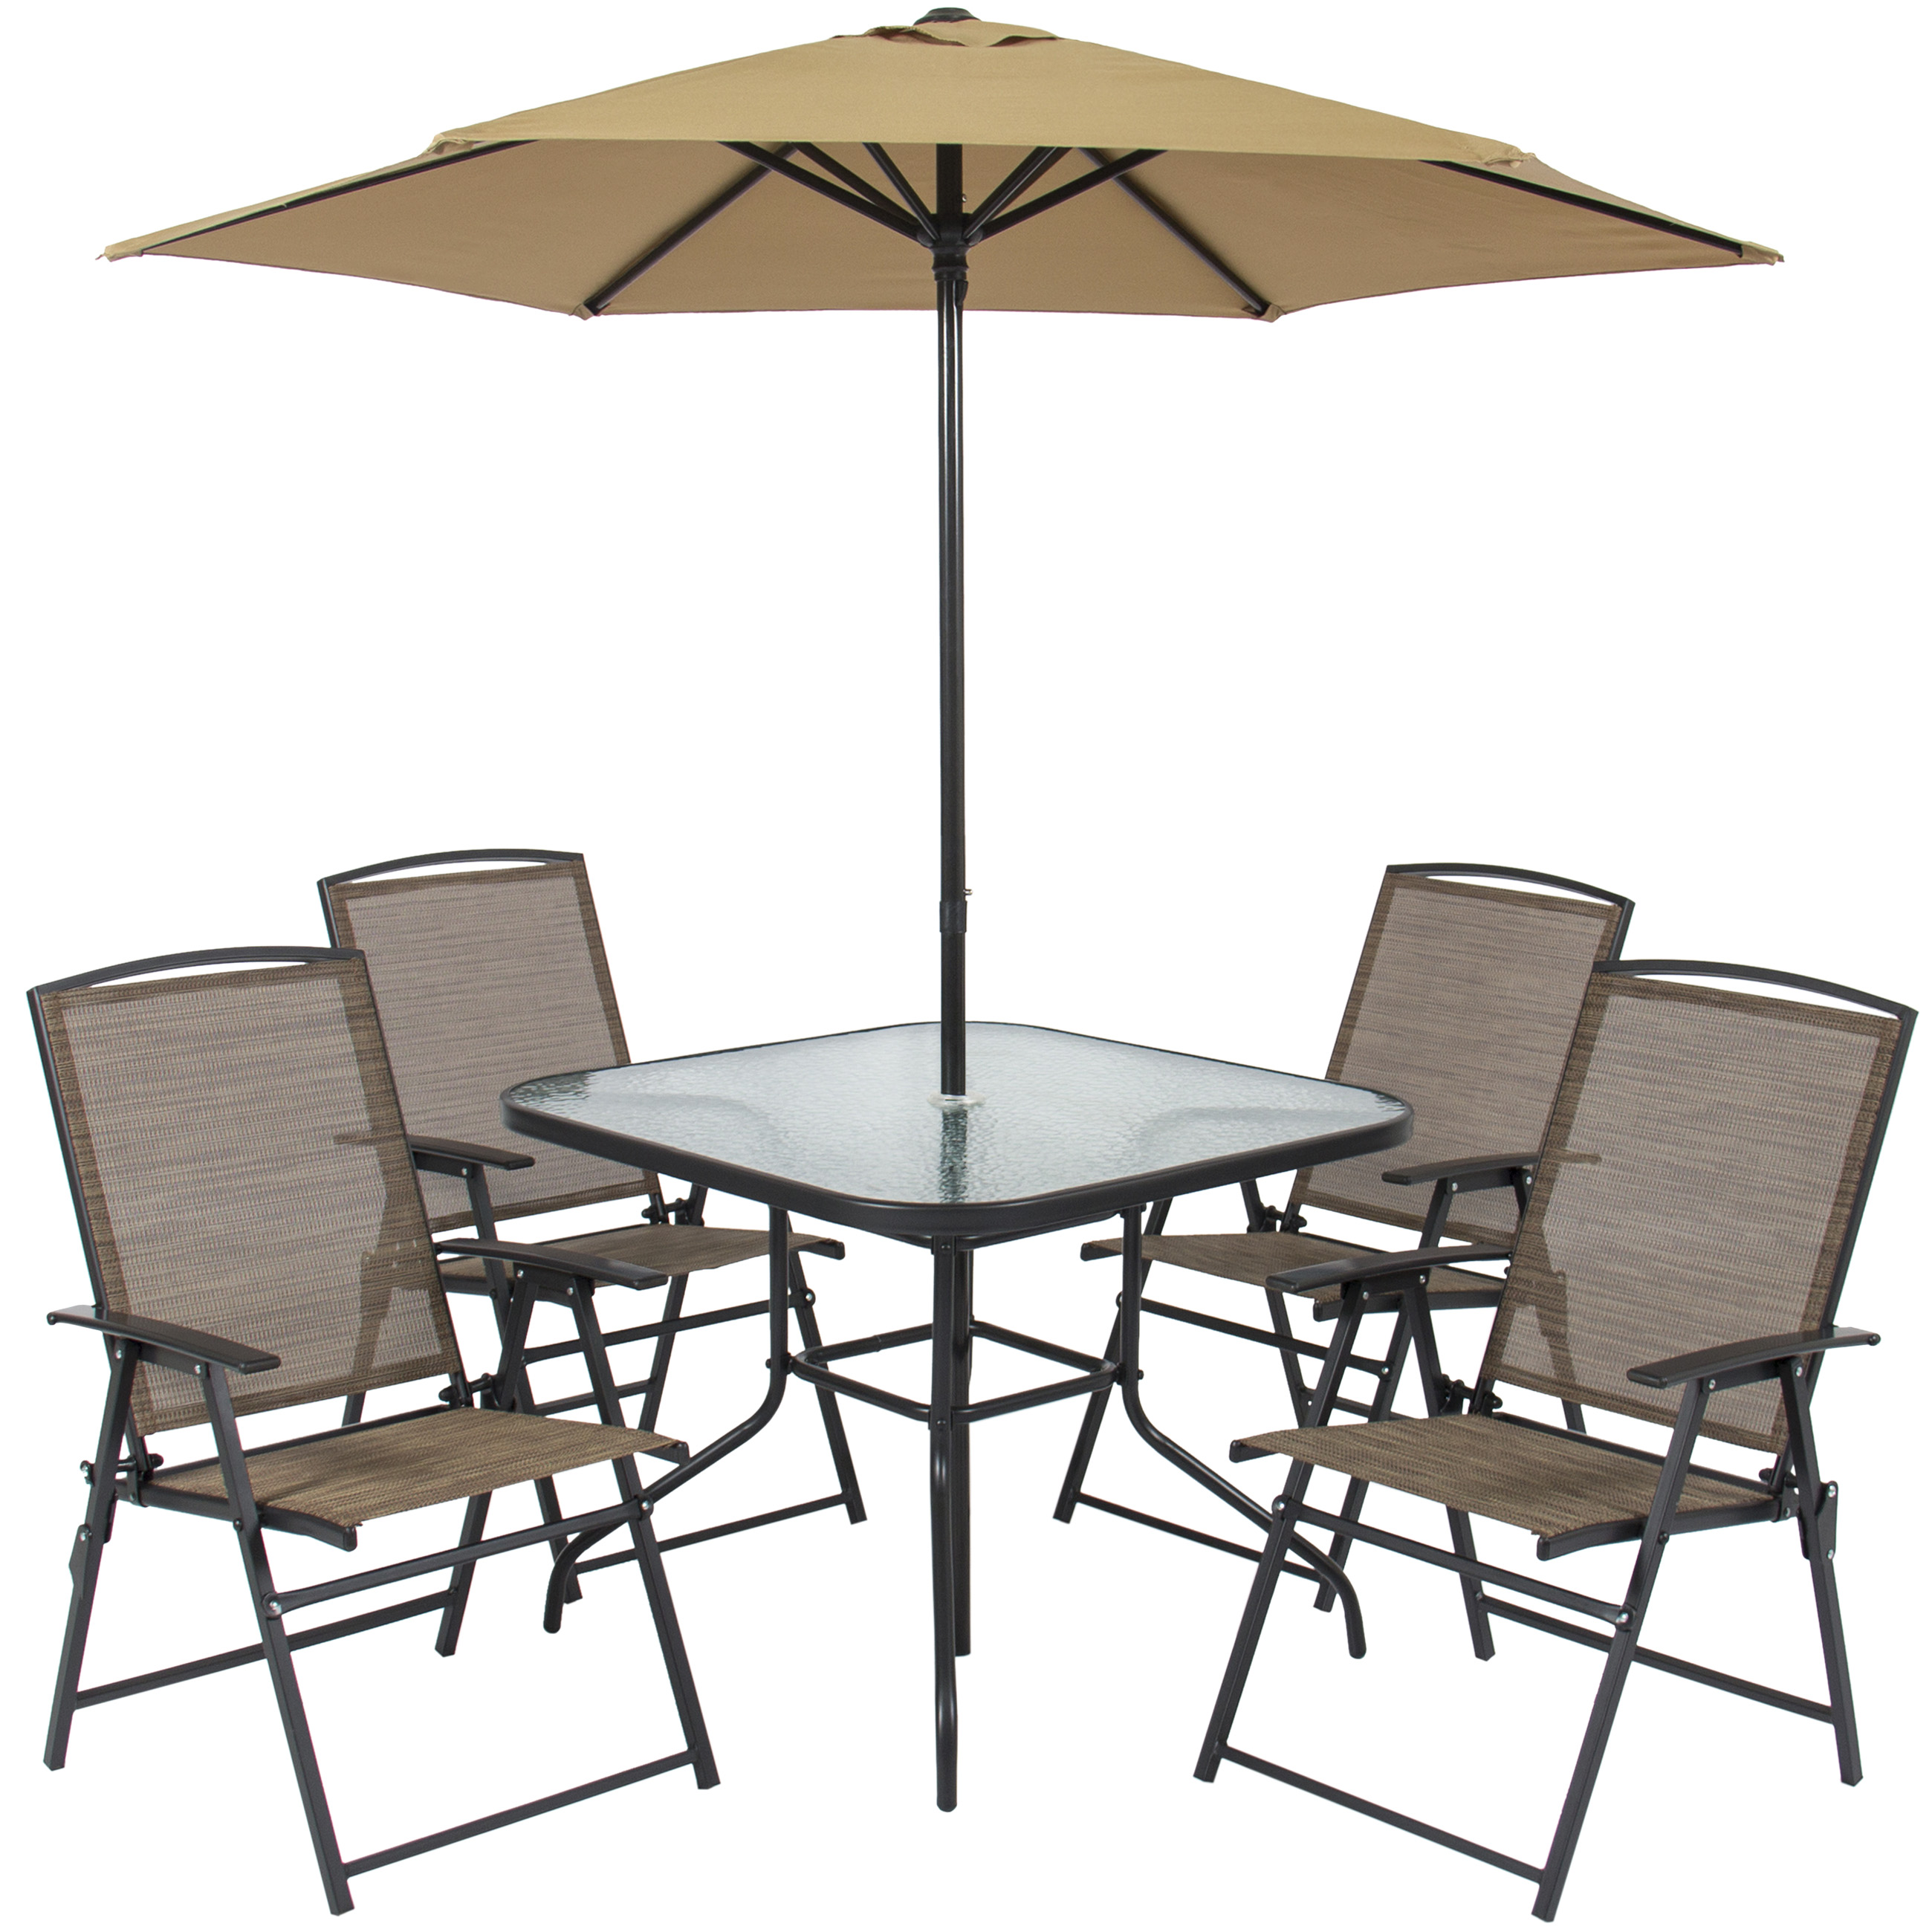 patio table umbrella best choice products 6 outdoor folding patio dining 10666